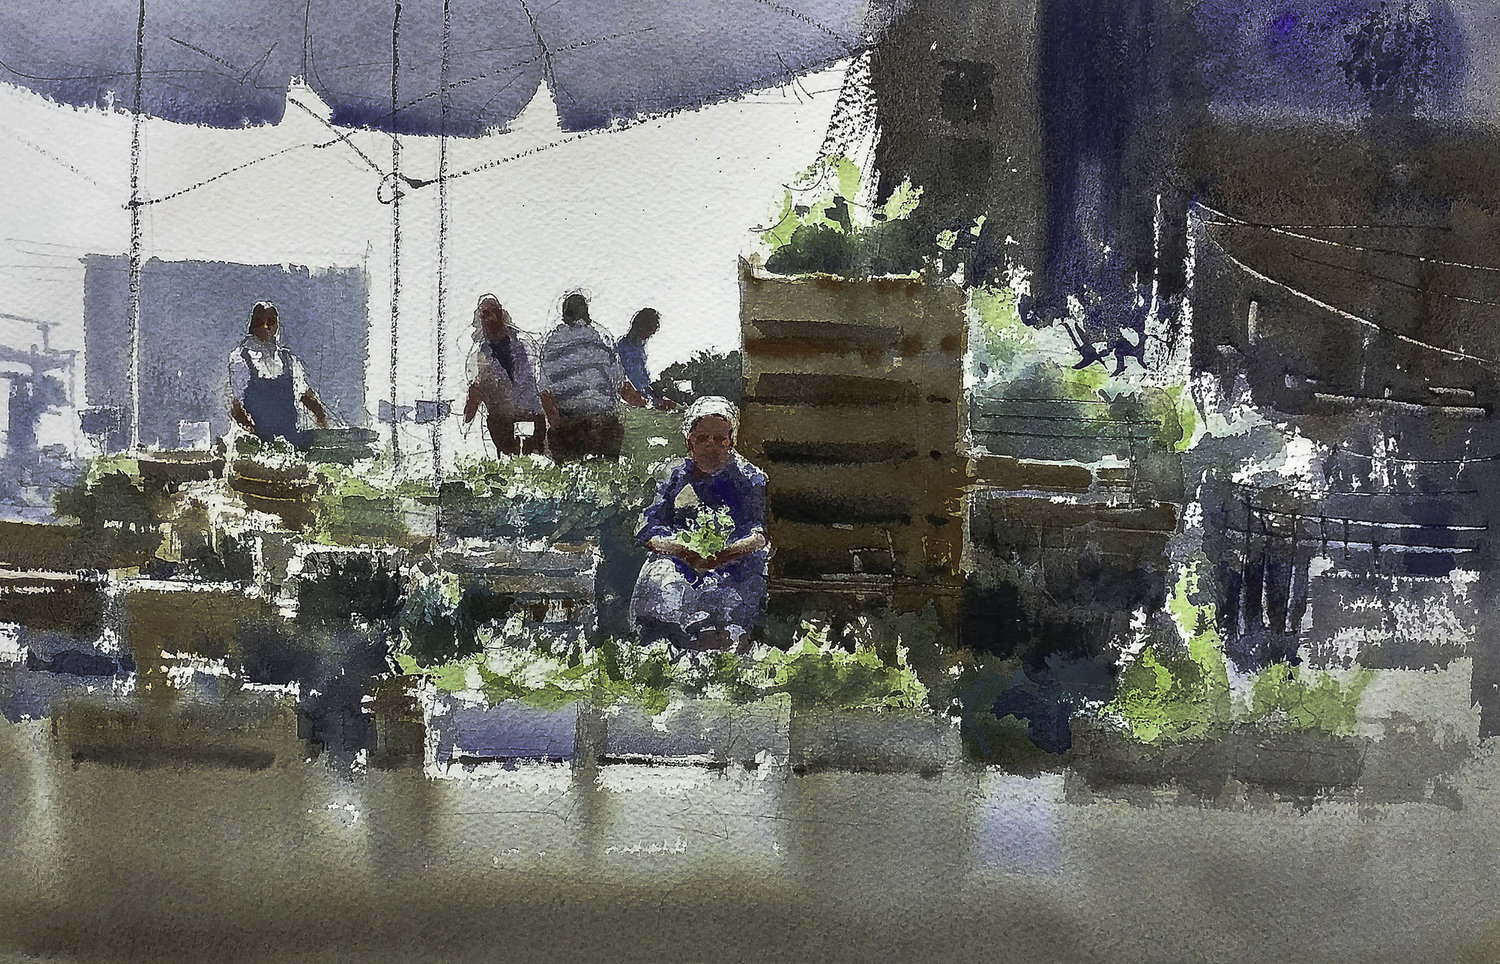 'The Market', Massimiliano Iocco, Watercolour, 30 x 40 cm